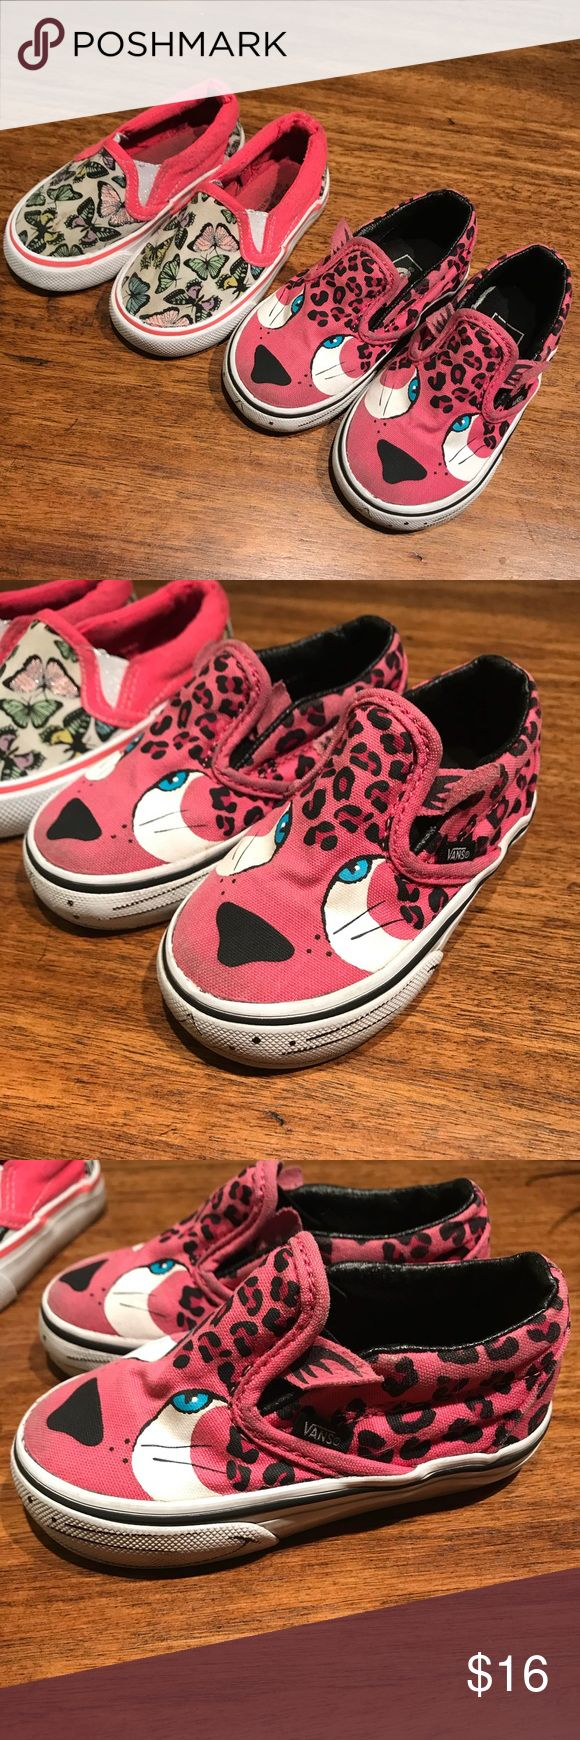 Vans and joe boxer slip-ons Used and loved with a lot of life left vans cheetah shoes and joe boxer butterfly slip-ons both size 6 (toddler) price is for both Vans Shoes Sneakers